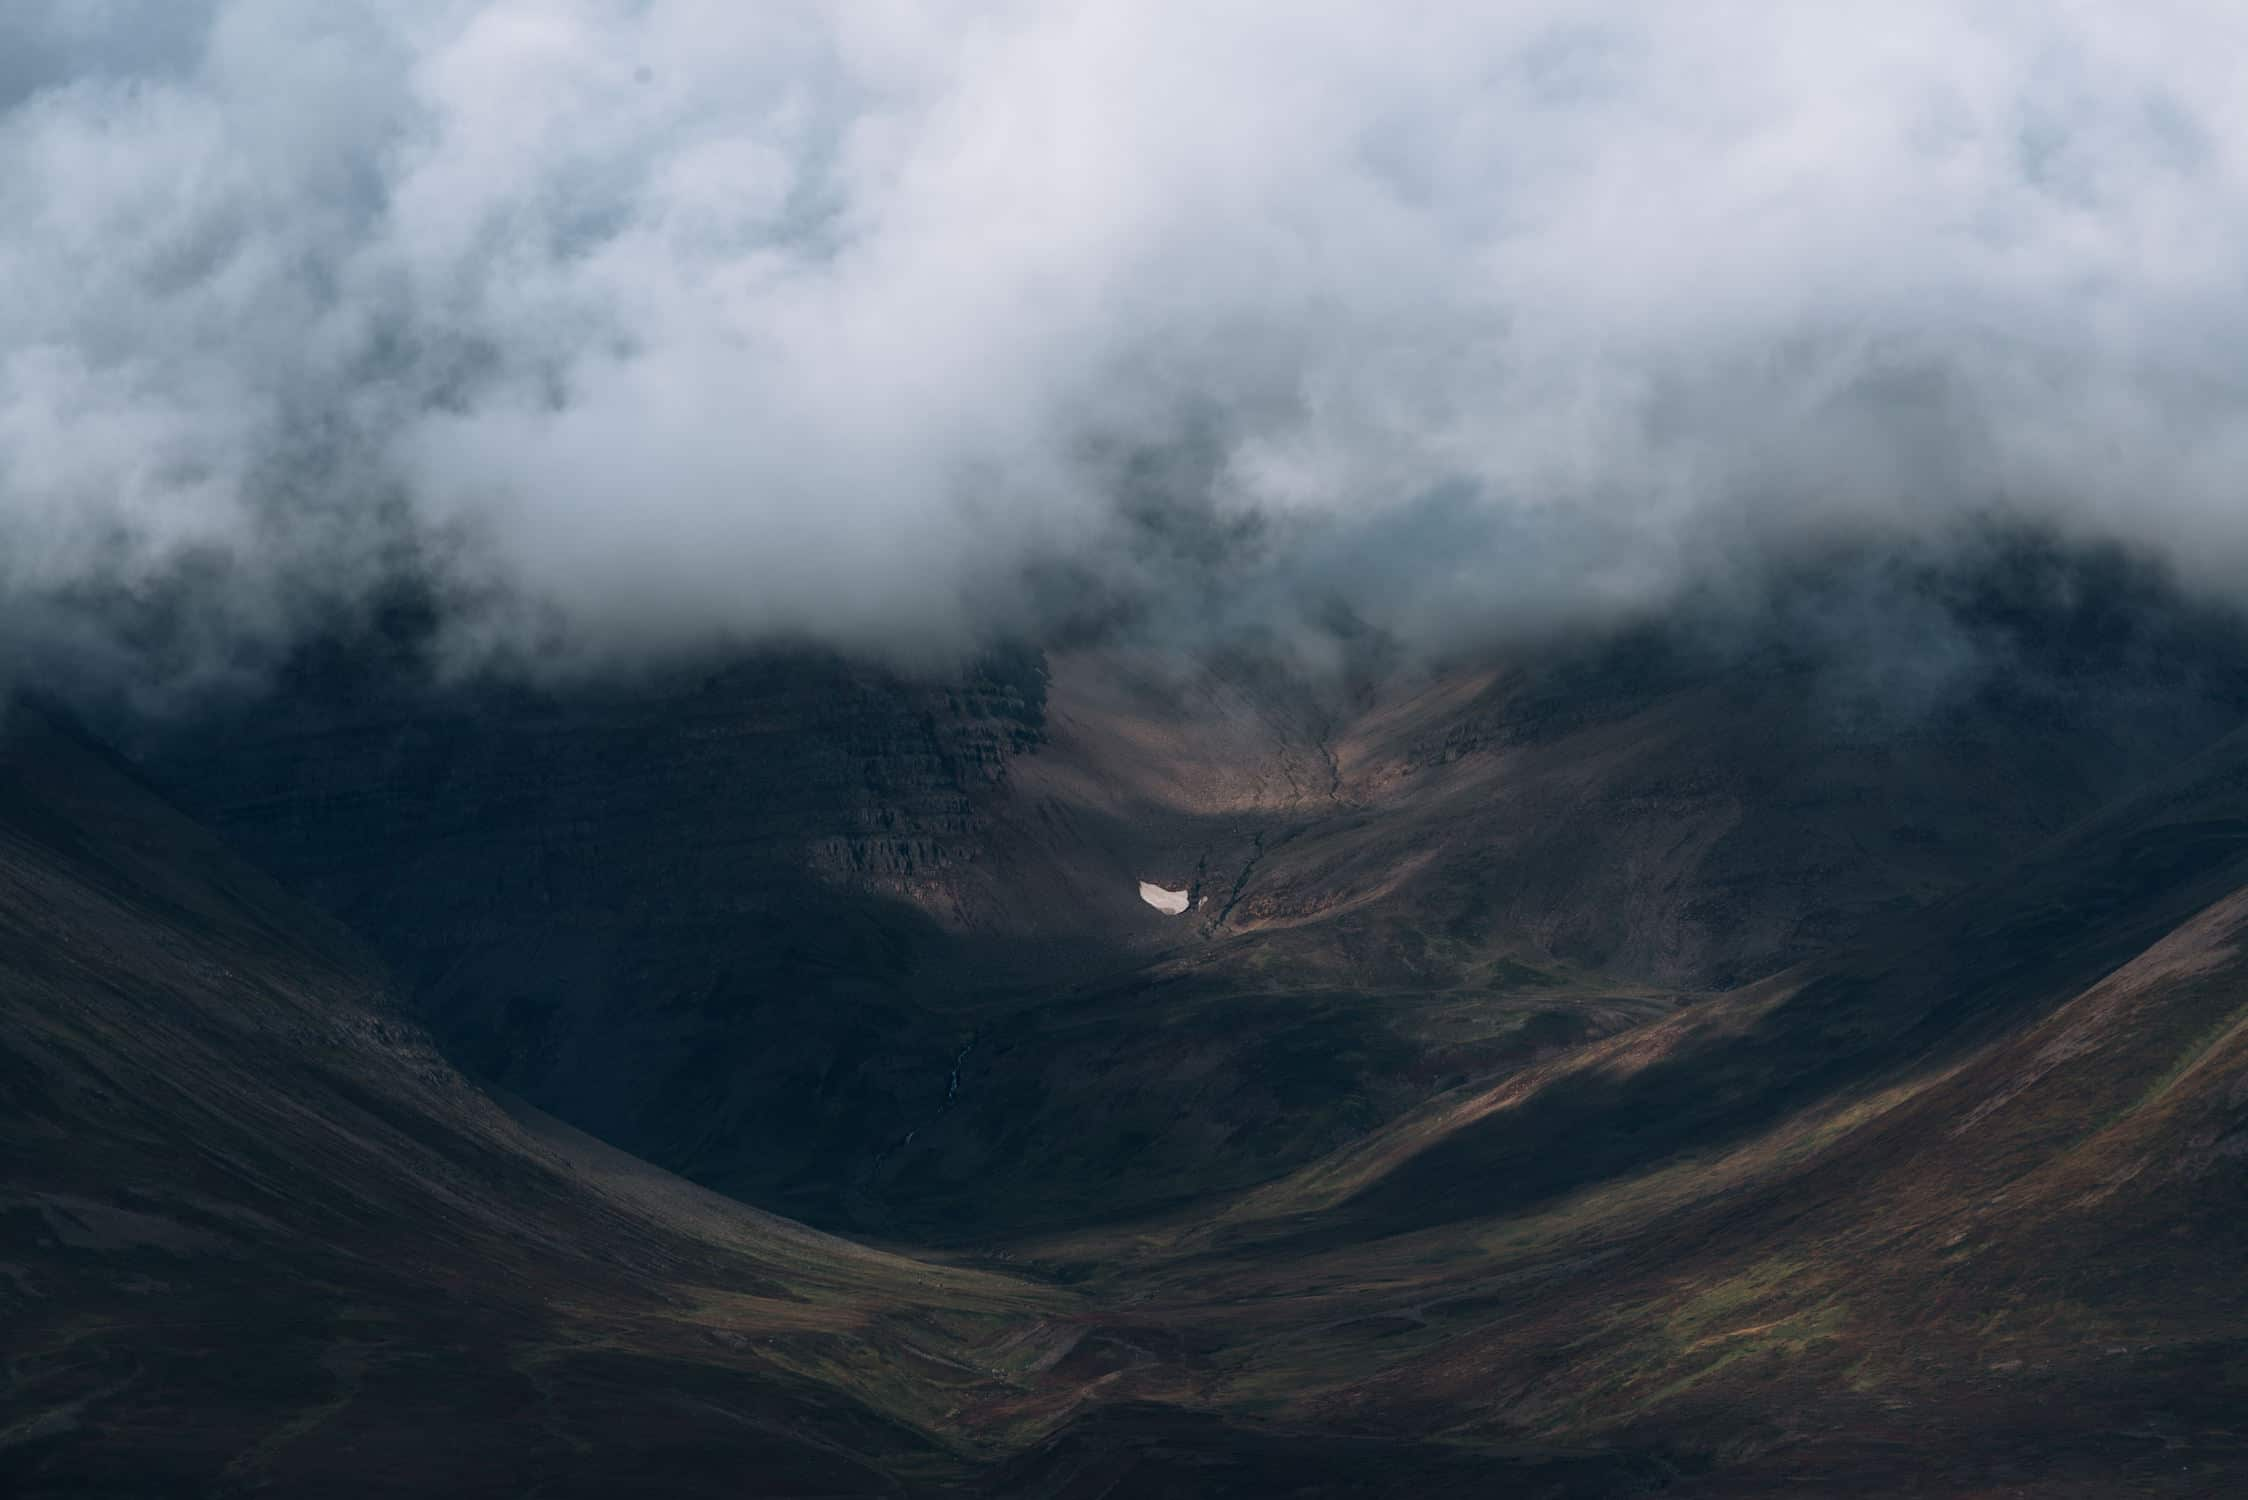 Abstract shapes and forms of water, rivers, glaciers and mountains in the moody Icelandic landscape captured by fine art photographer Michael Schauer